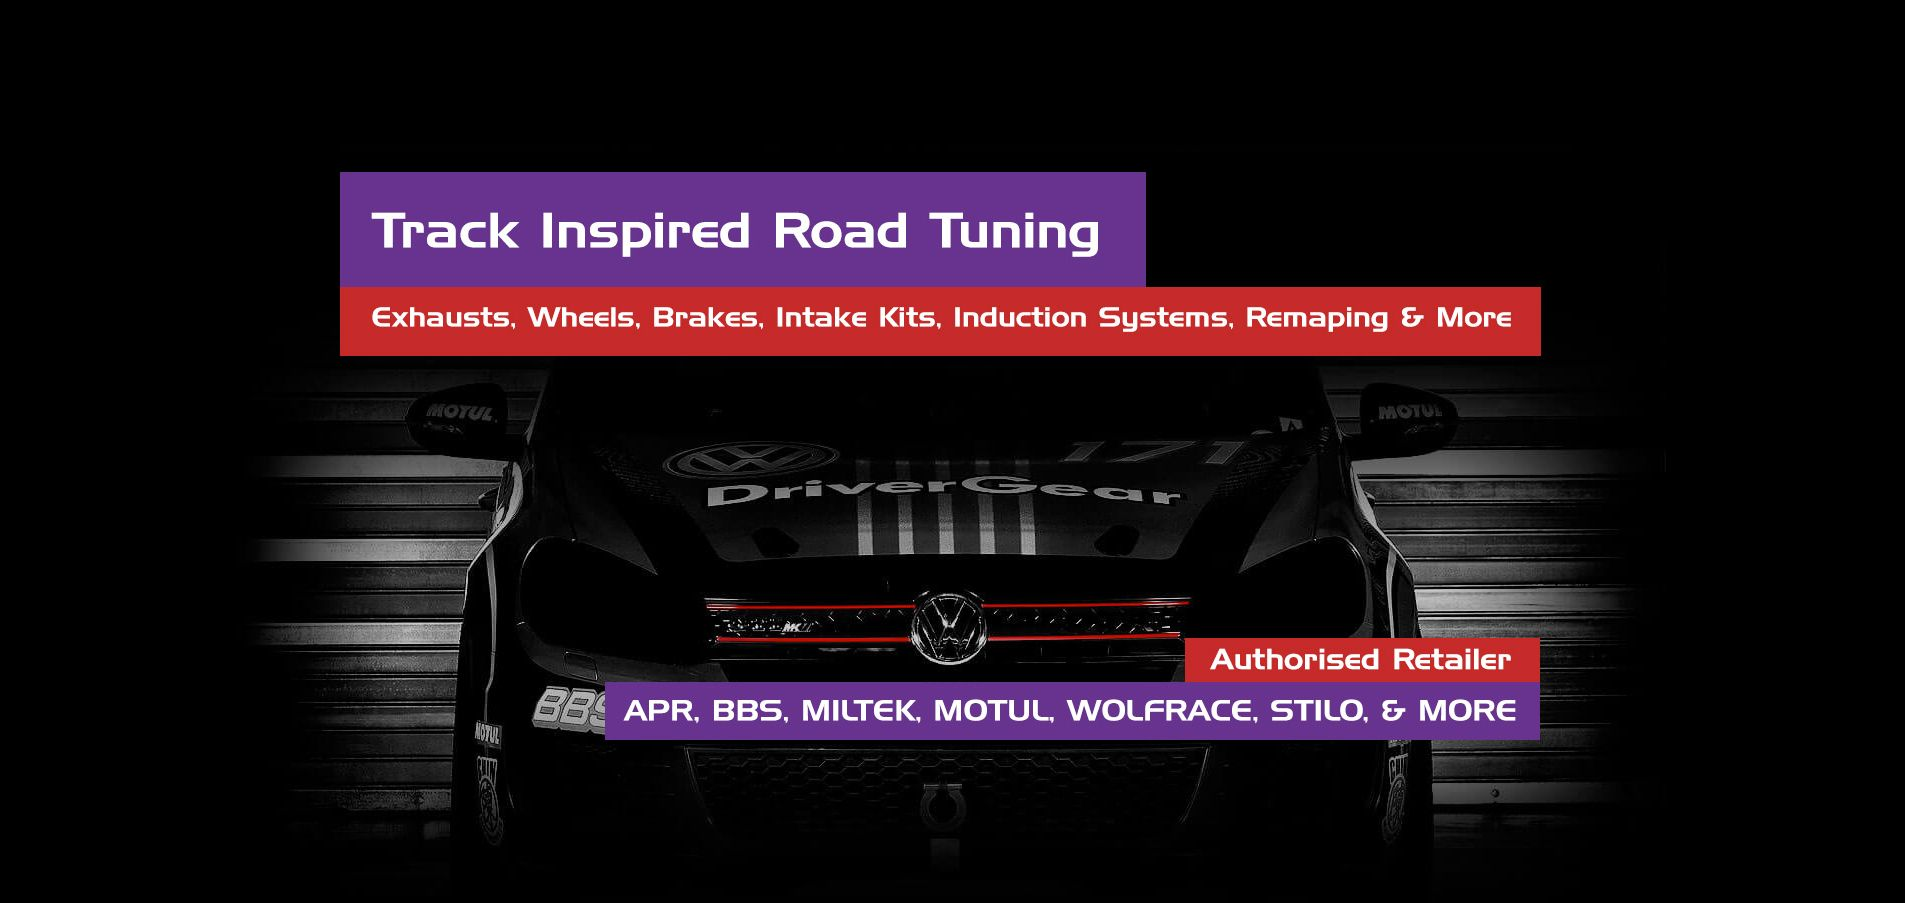 track inspired road tuning, exhausts wheels, brakes, intake kits, induction systems, remapping and more